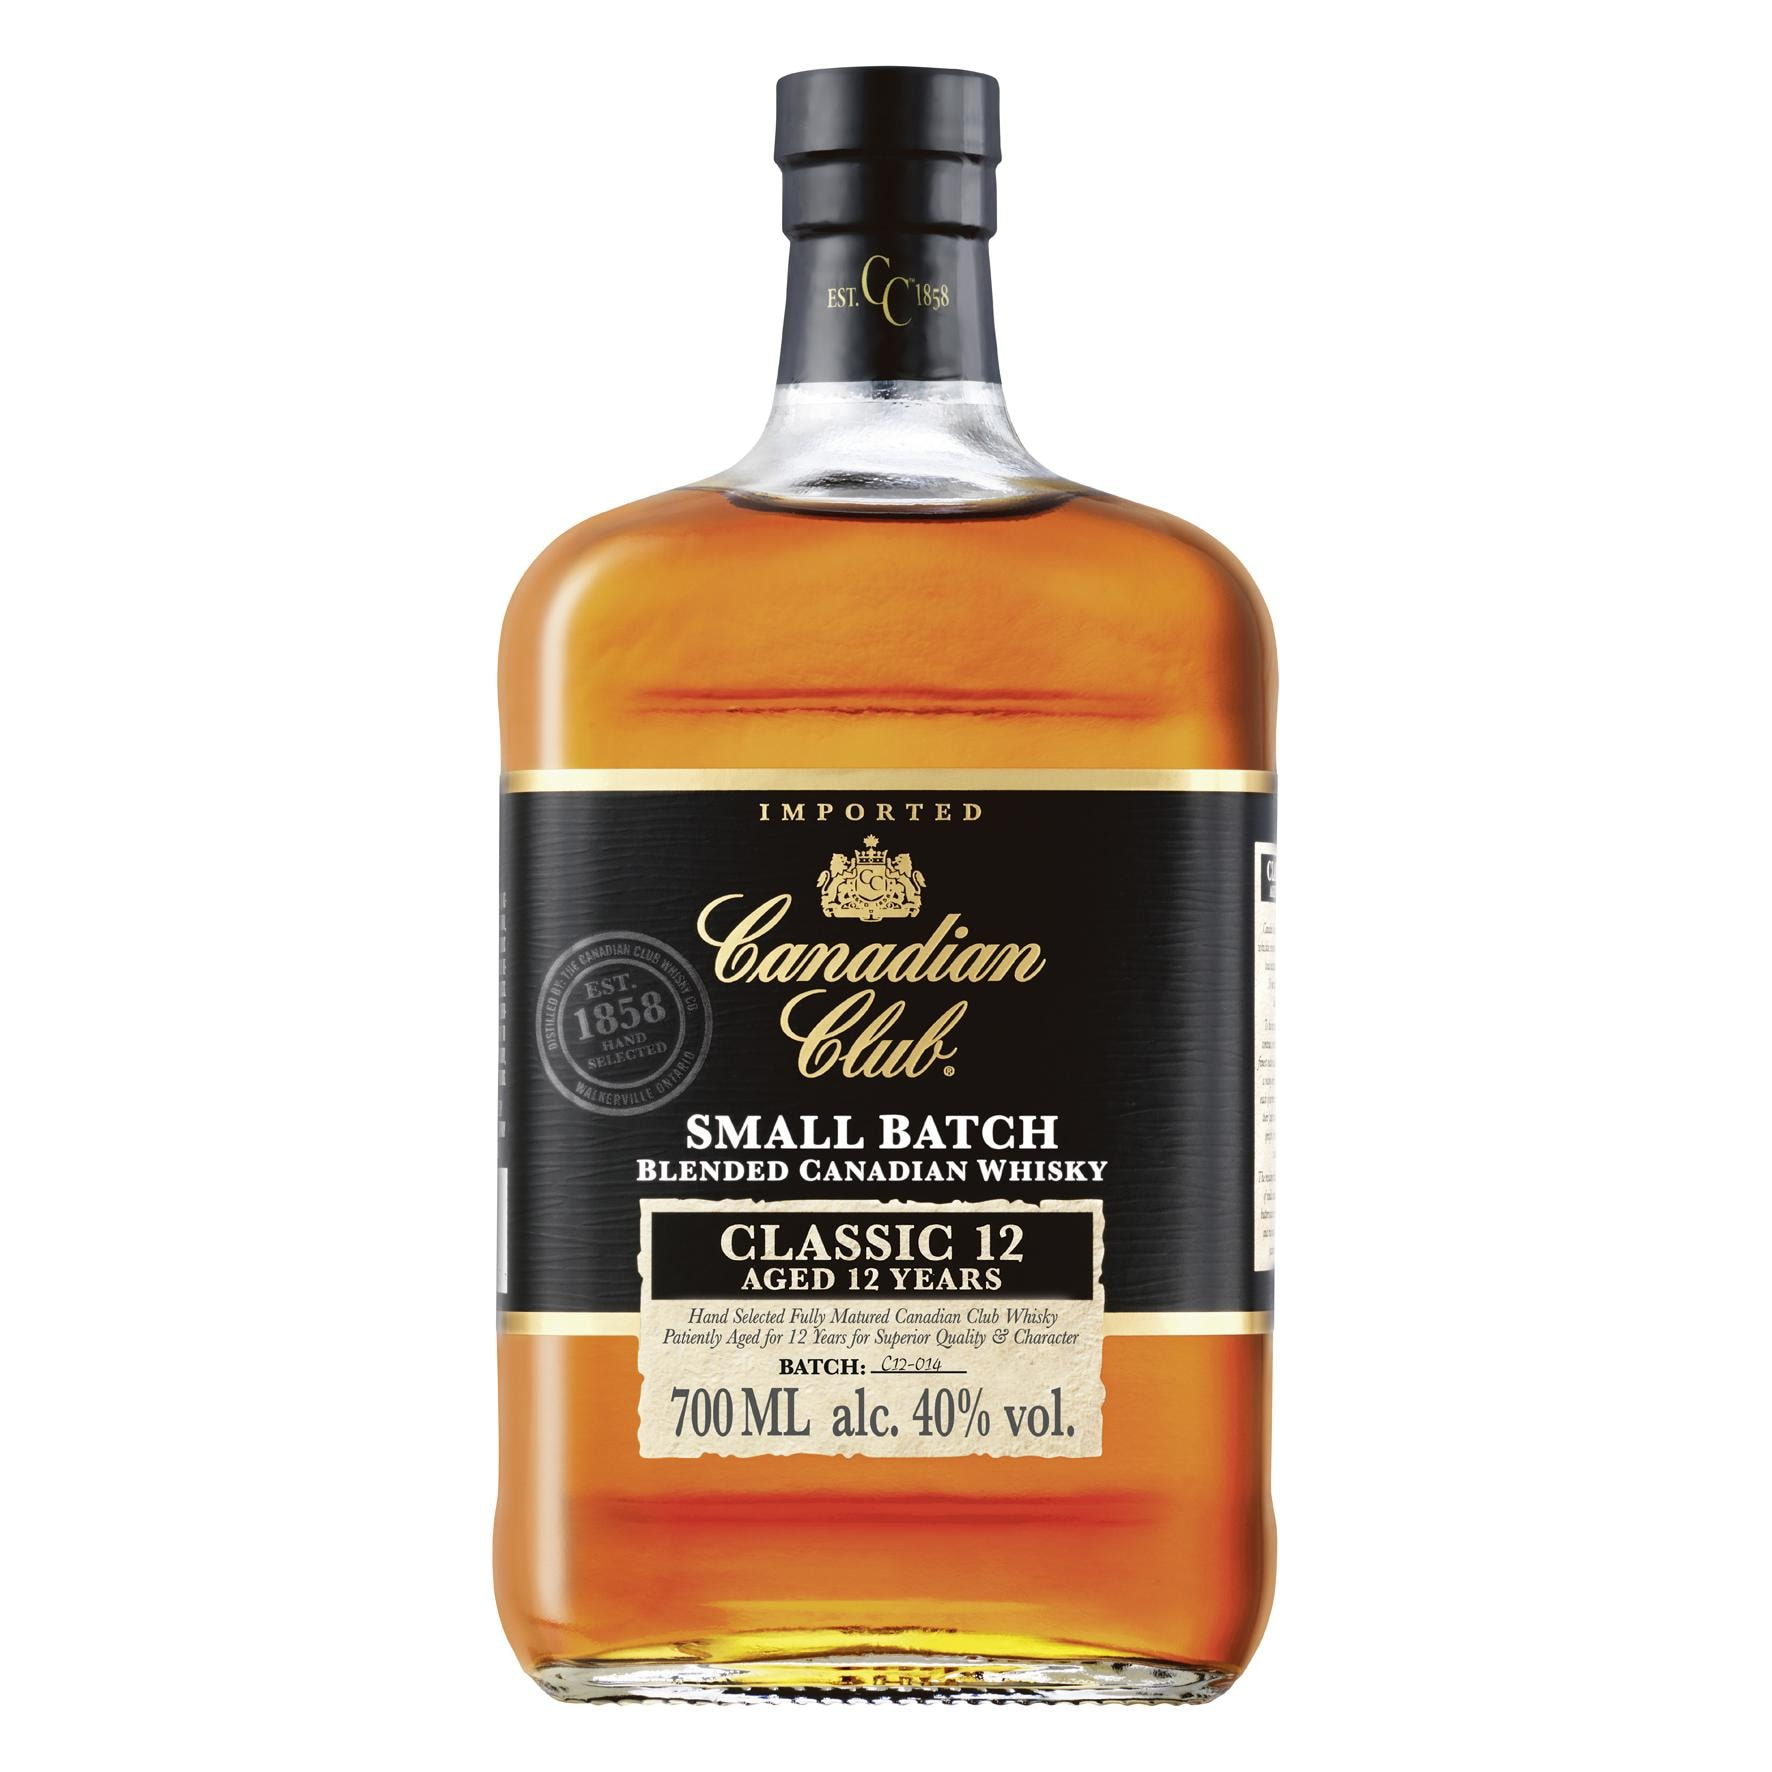 Canadian Club 12 Small Batch Blended Canadian Whisky 0,7l